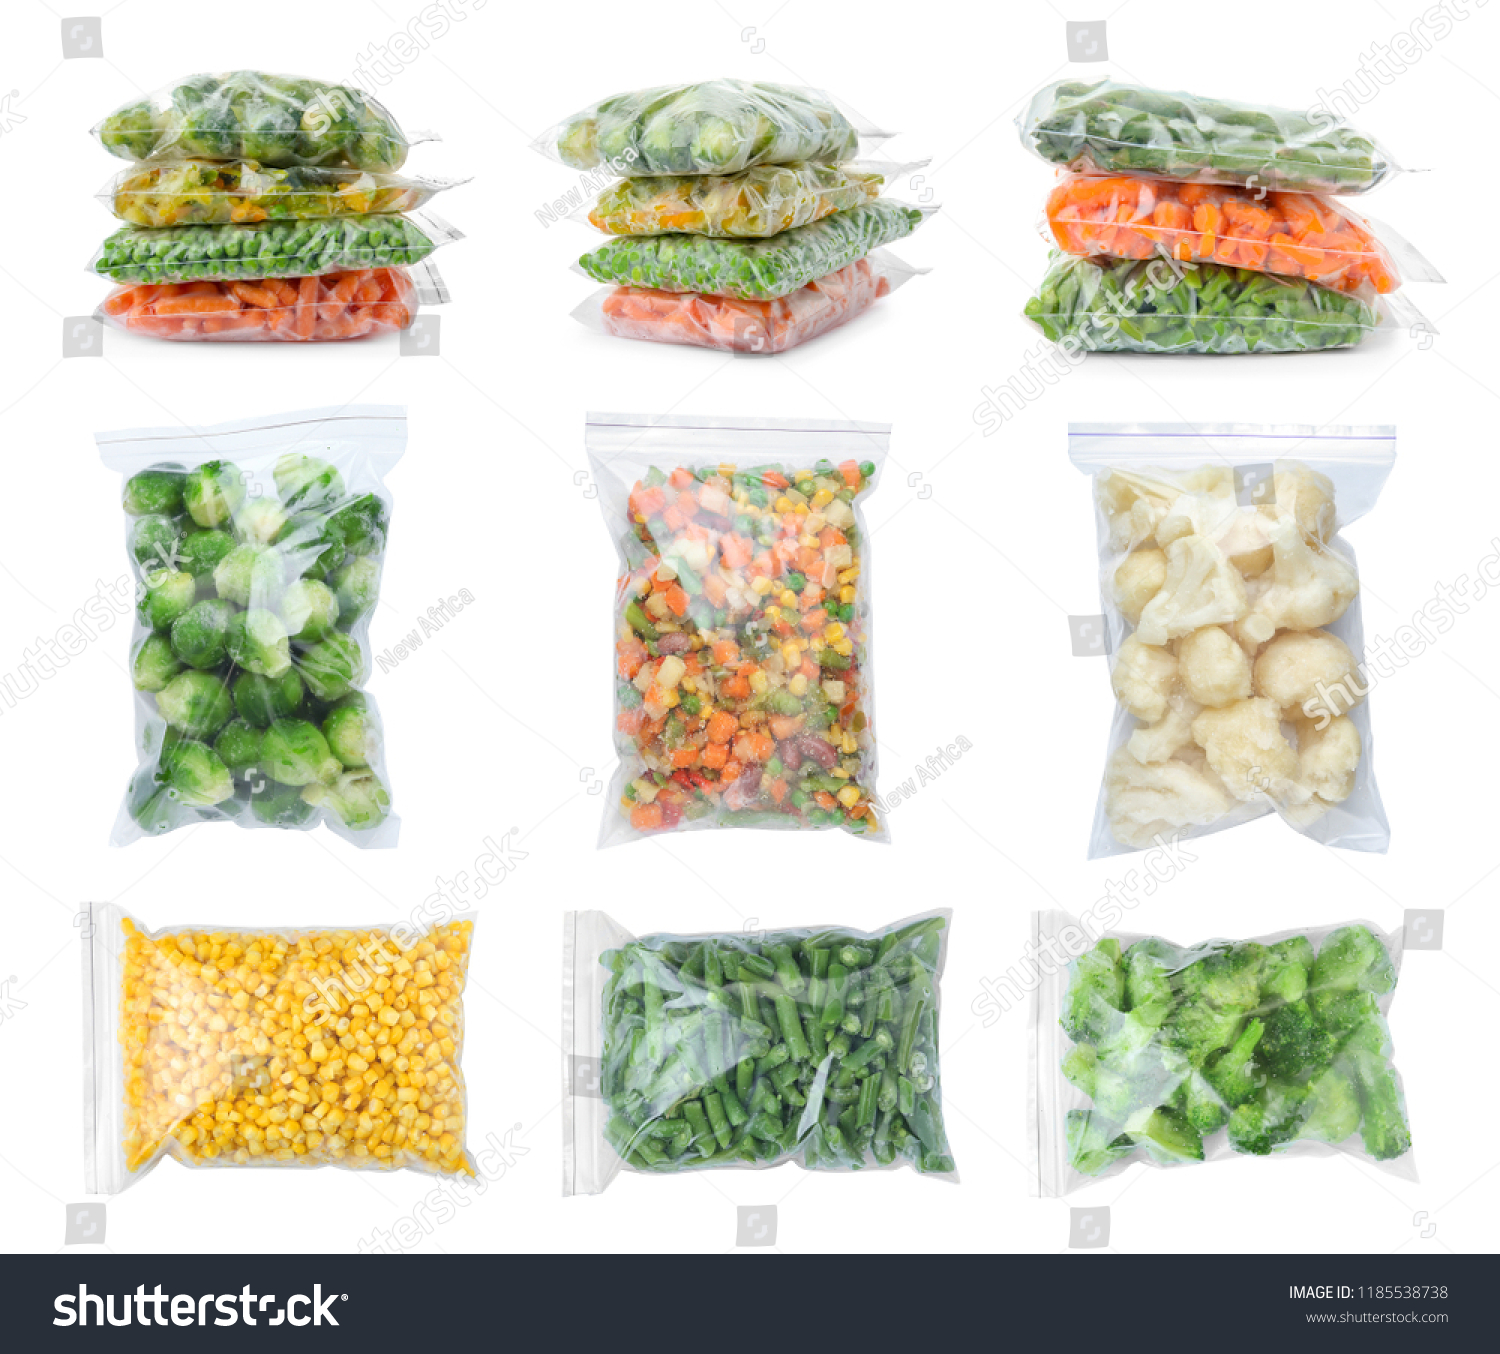 Set with frozen vegetables in plastic bags on white background #1185538738